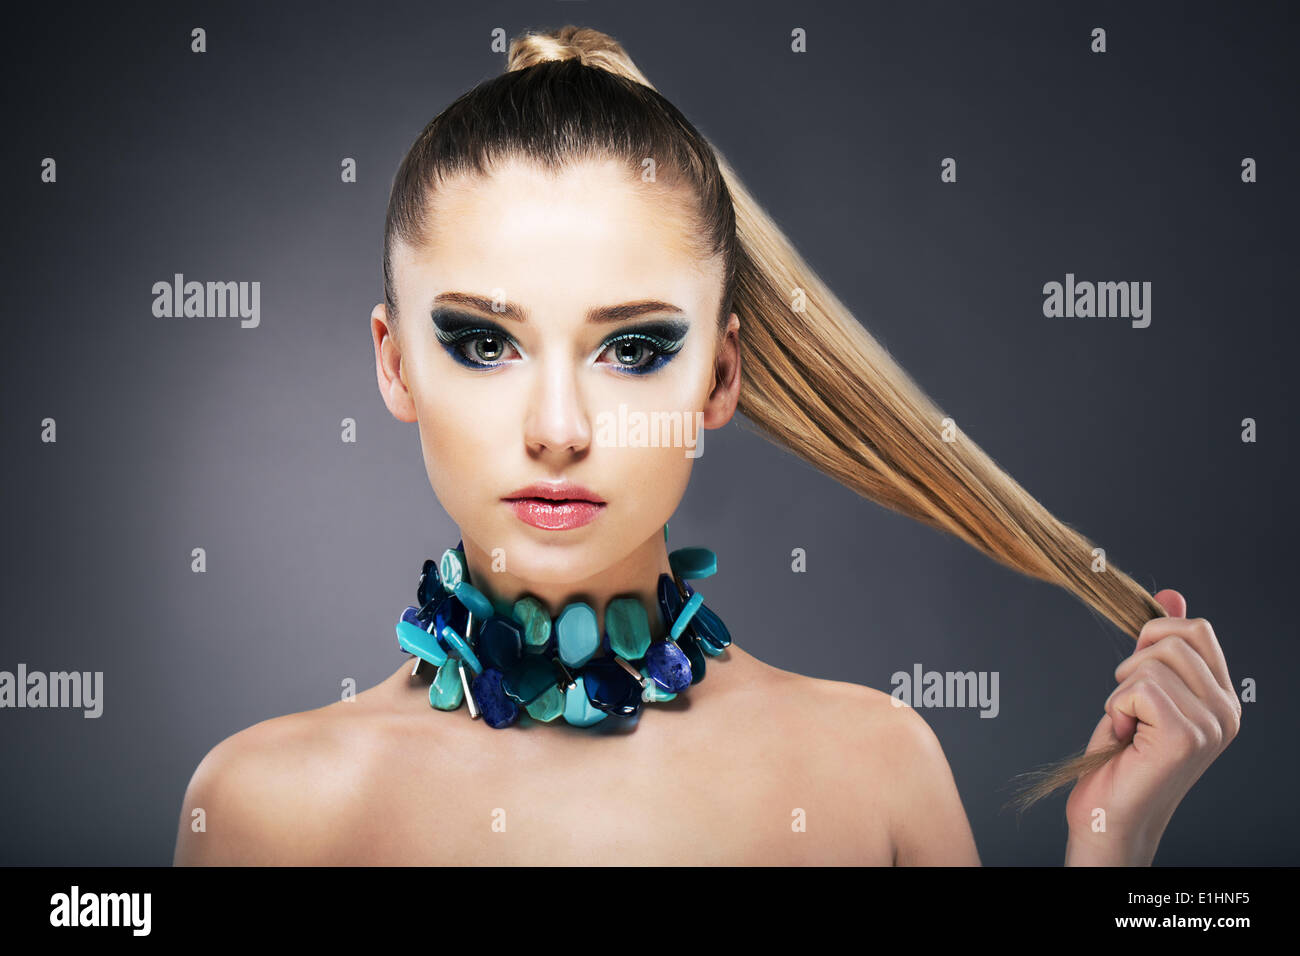 Treatment. Woman holding Tips of her long faint Hair in hand - Stock Image